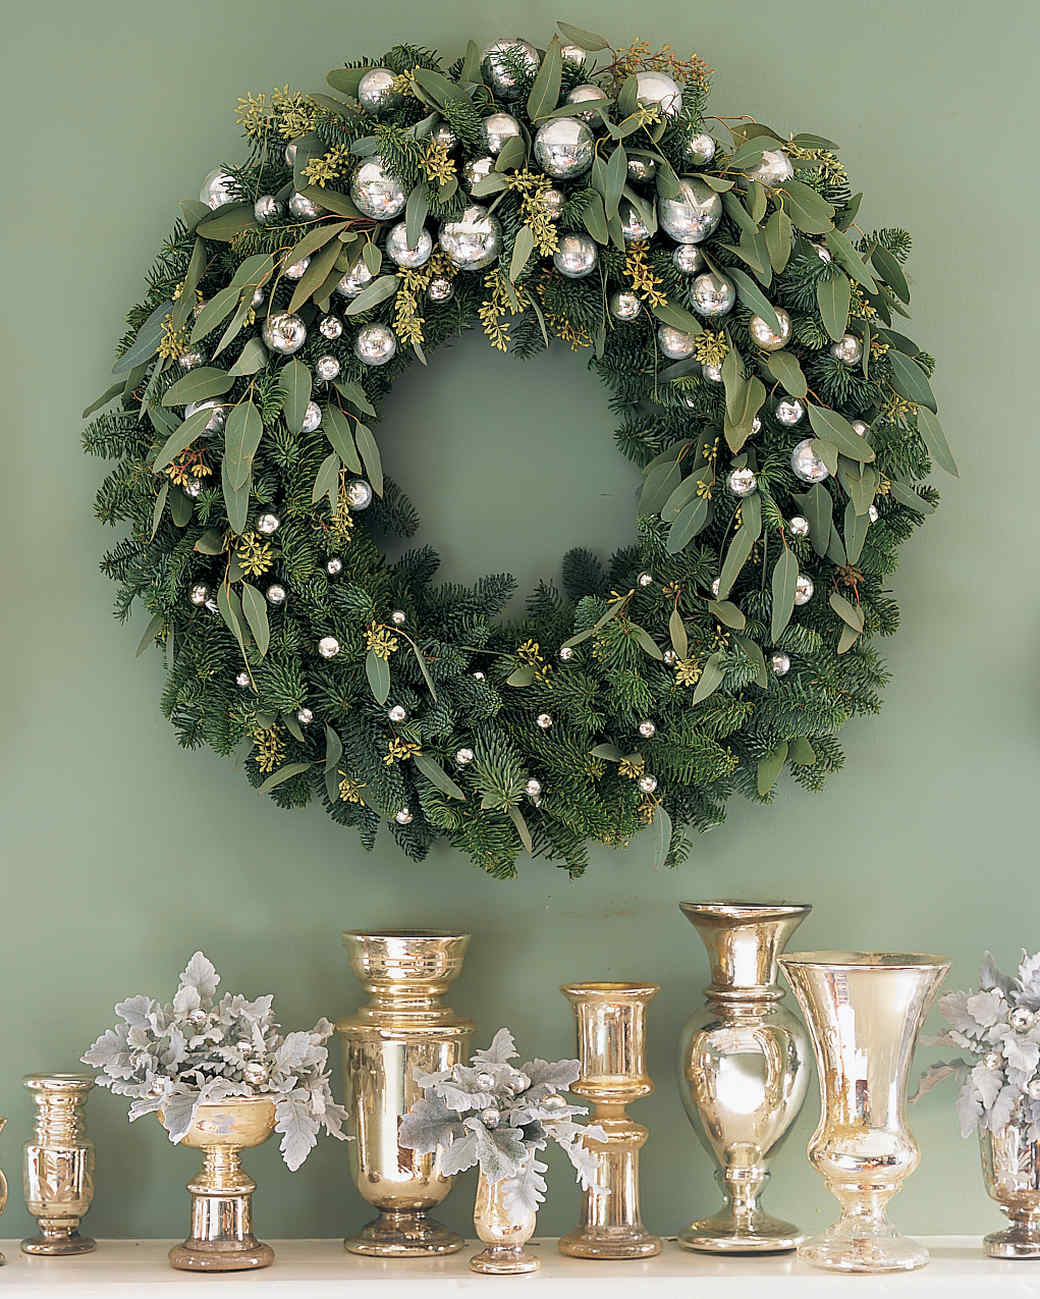 Christmas Checklist: Decorating the Mantel